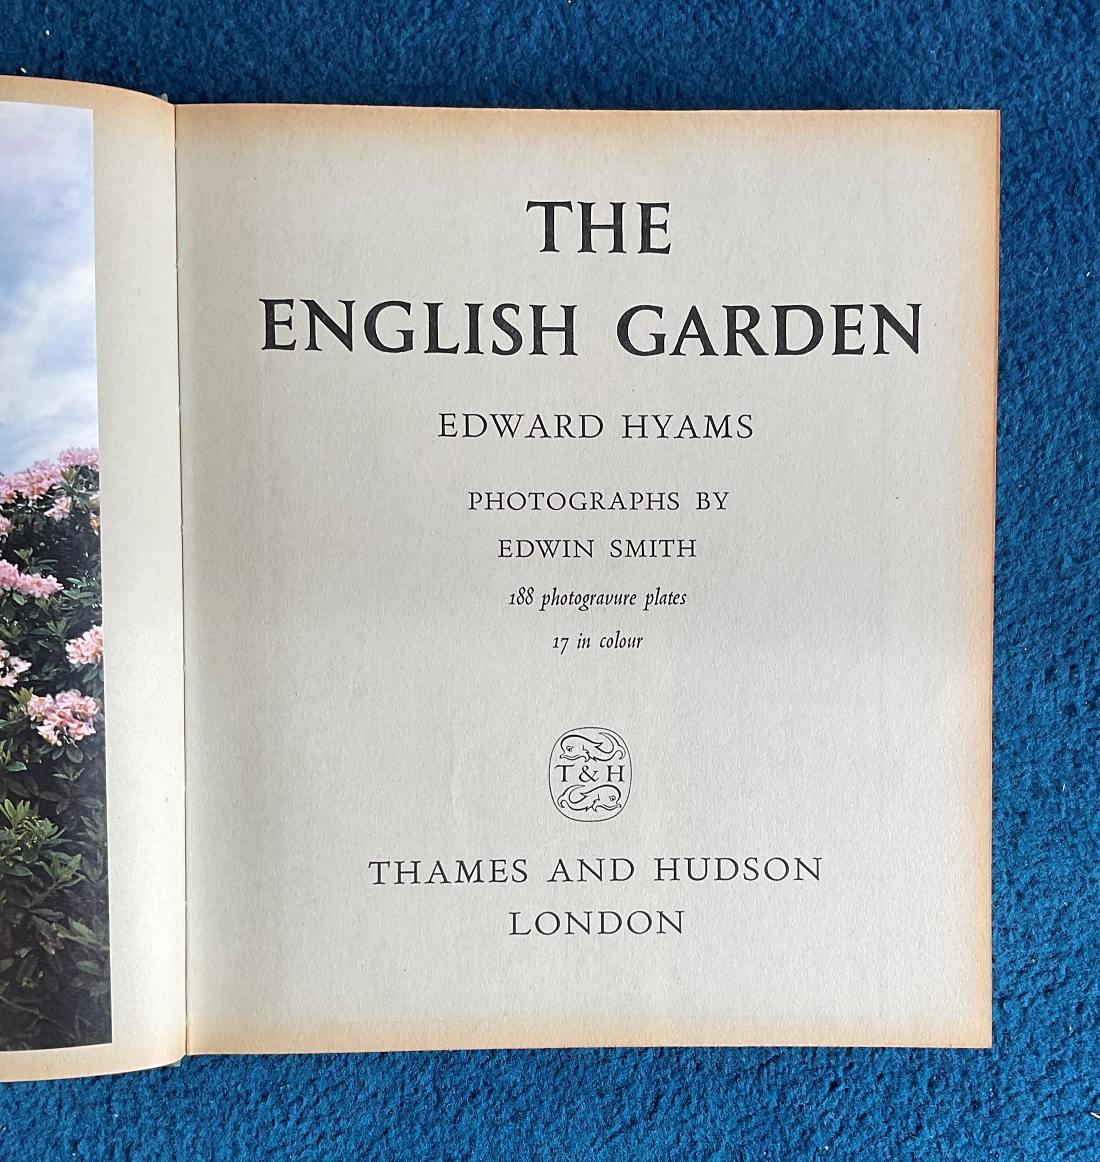 Signed Hardback Book The English Garden by Edward Hyams Signed by Diana Barnato Walker MBE this Book - Image 3 of 4